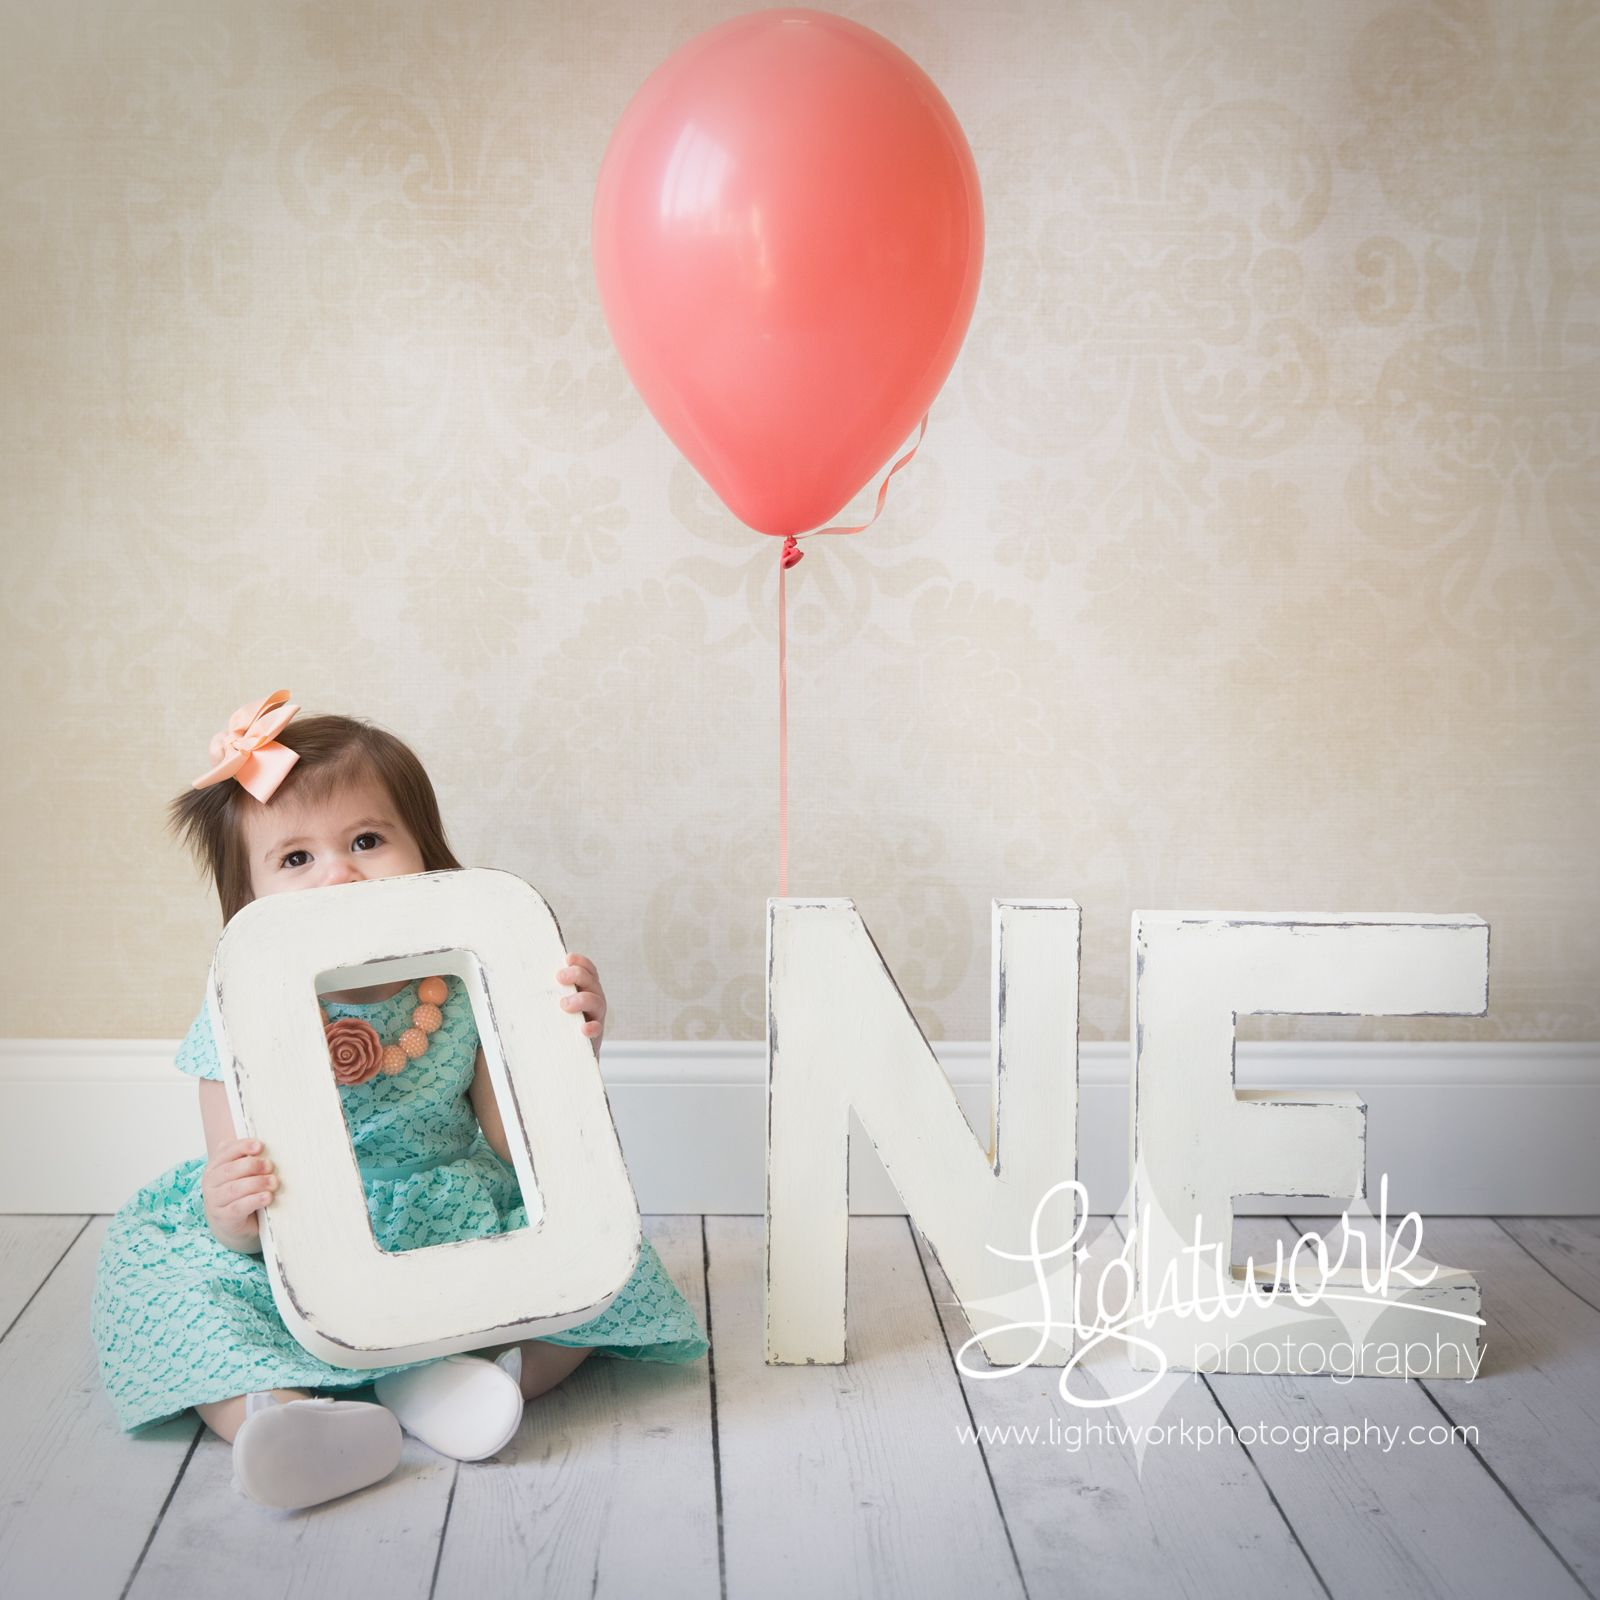 1st Birthday Photoshoot Props and Photos by Lightwork